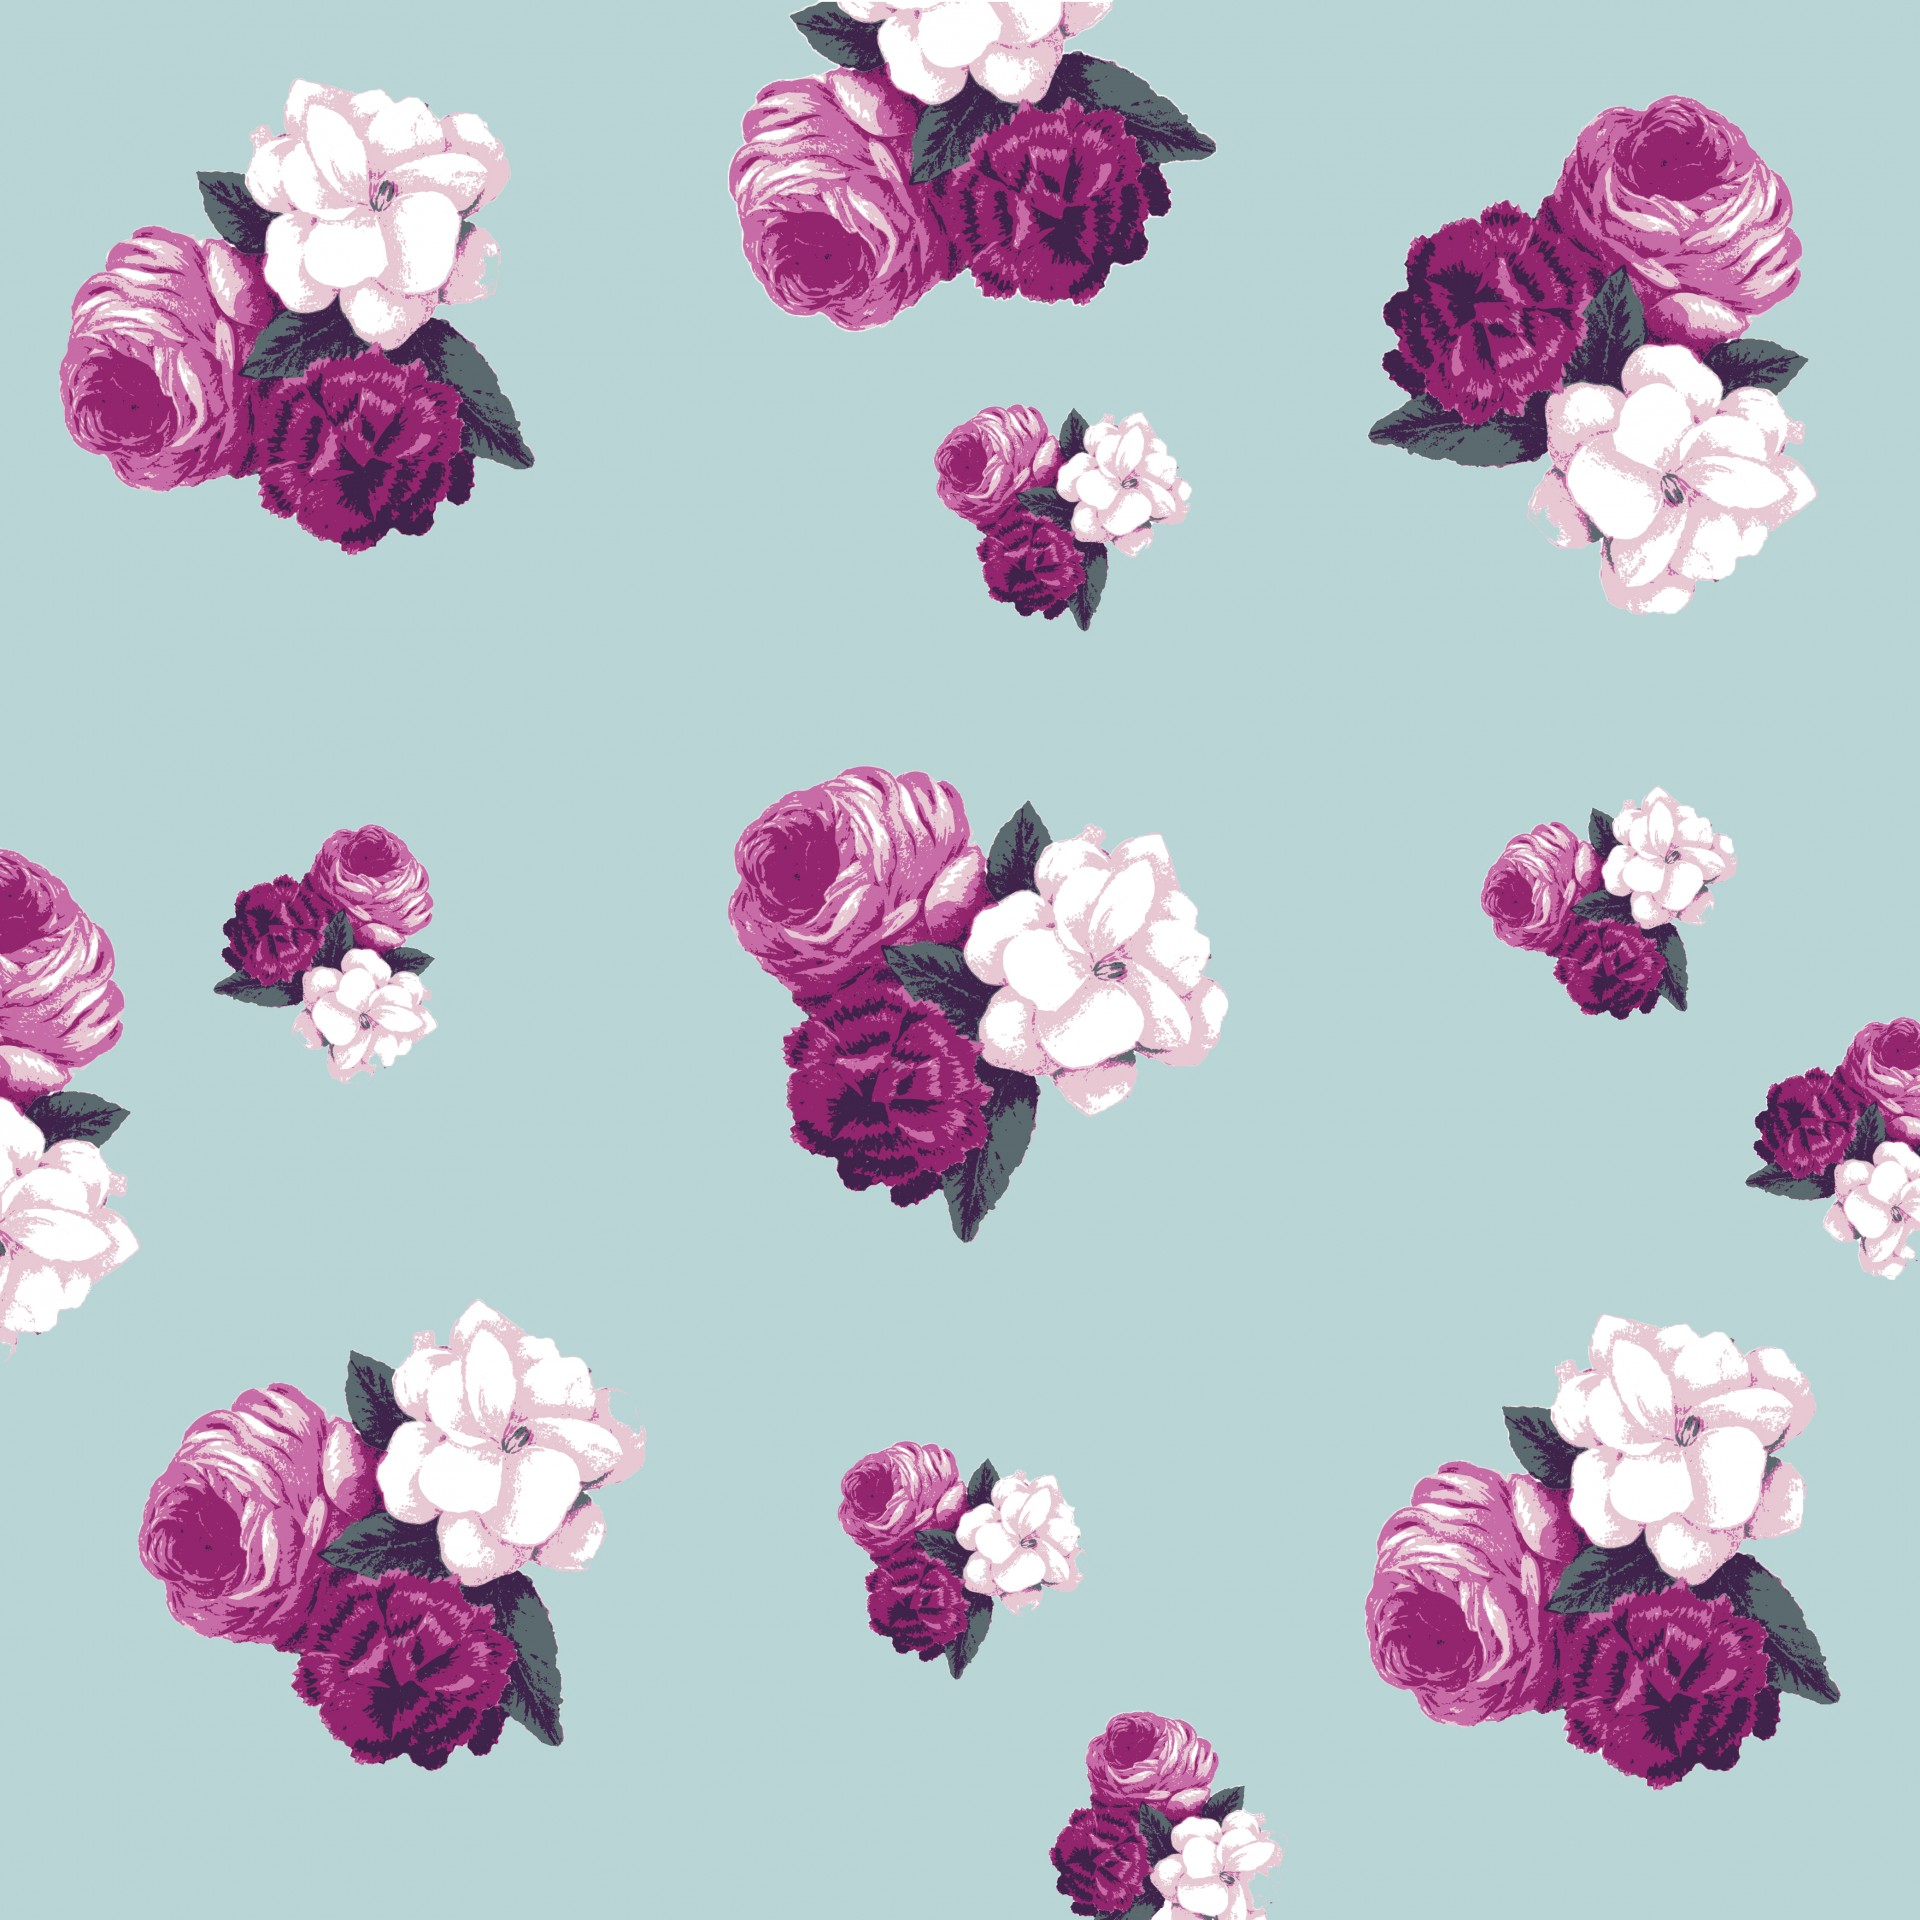 Flowers Floral Roses Vintage Wallpaper Free Image From Needpix Com